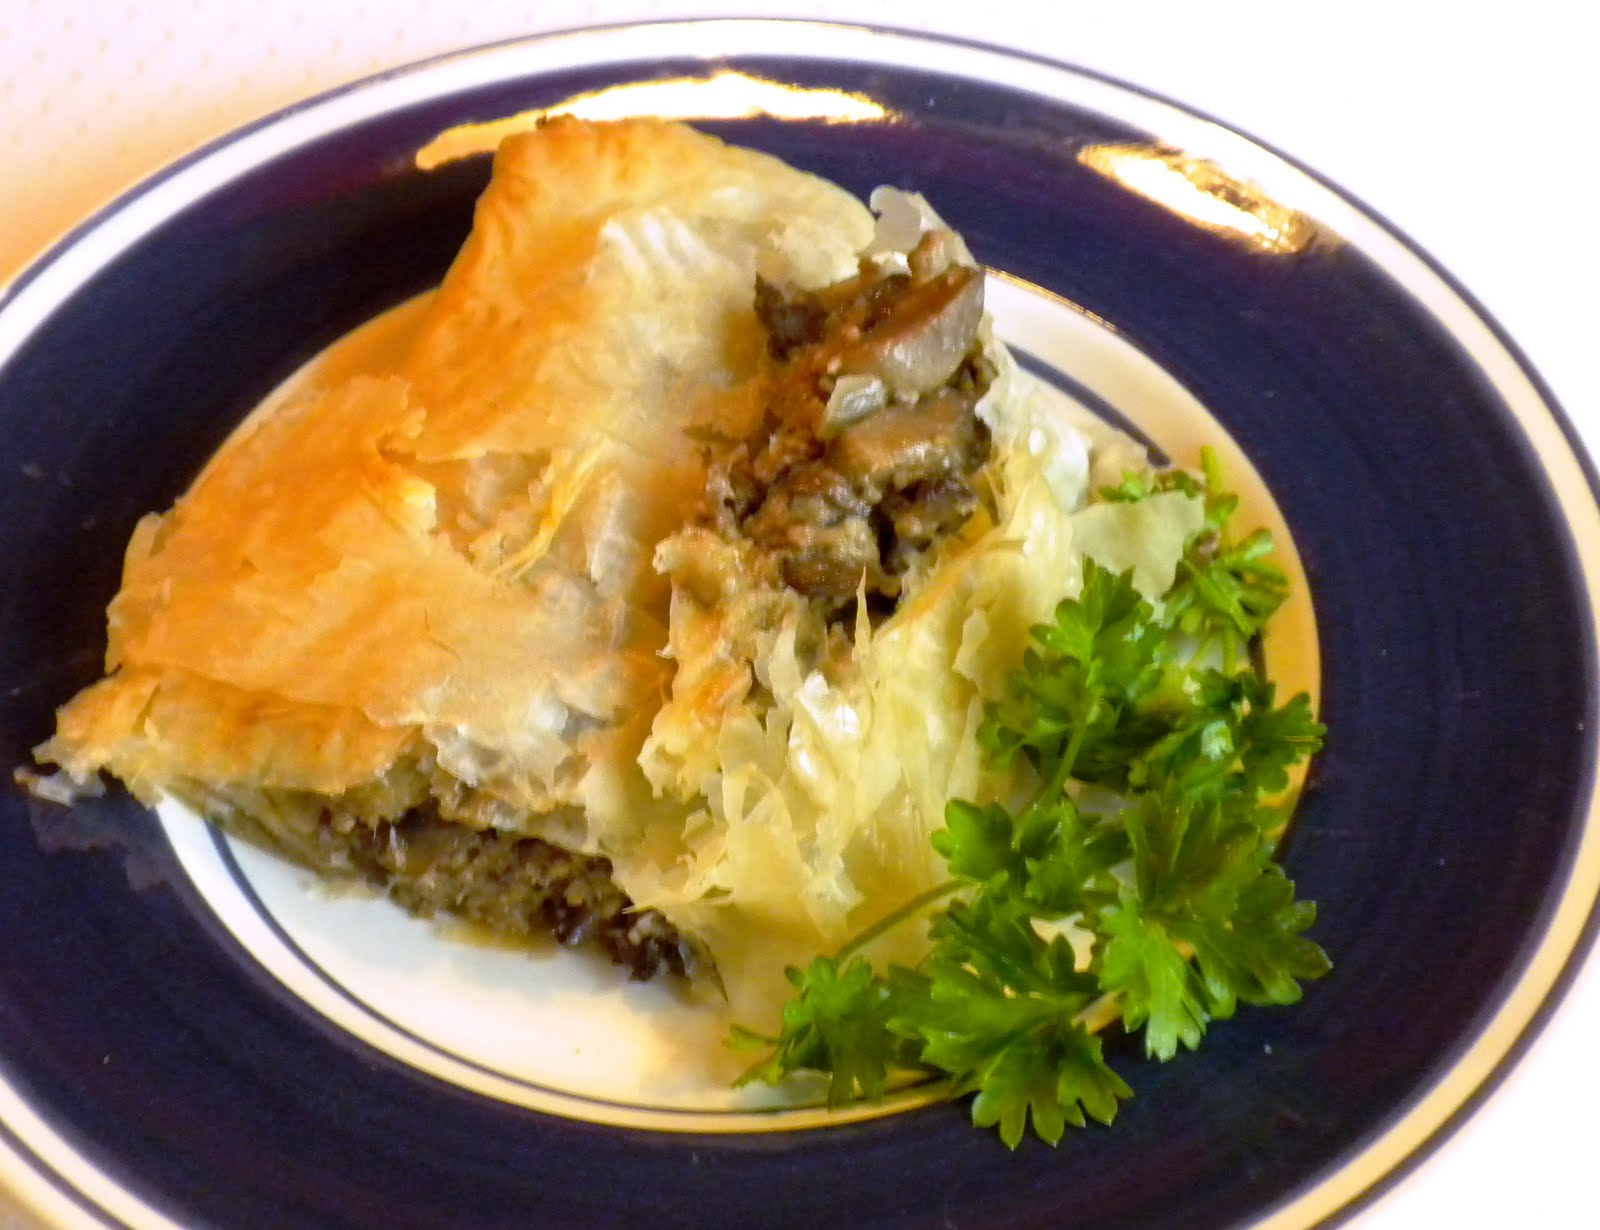 Mushroom Strudel and The Berghoff